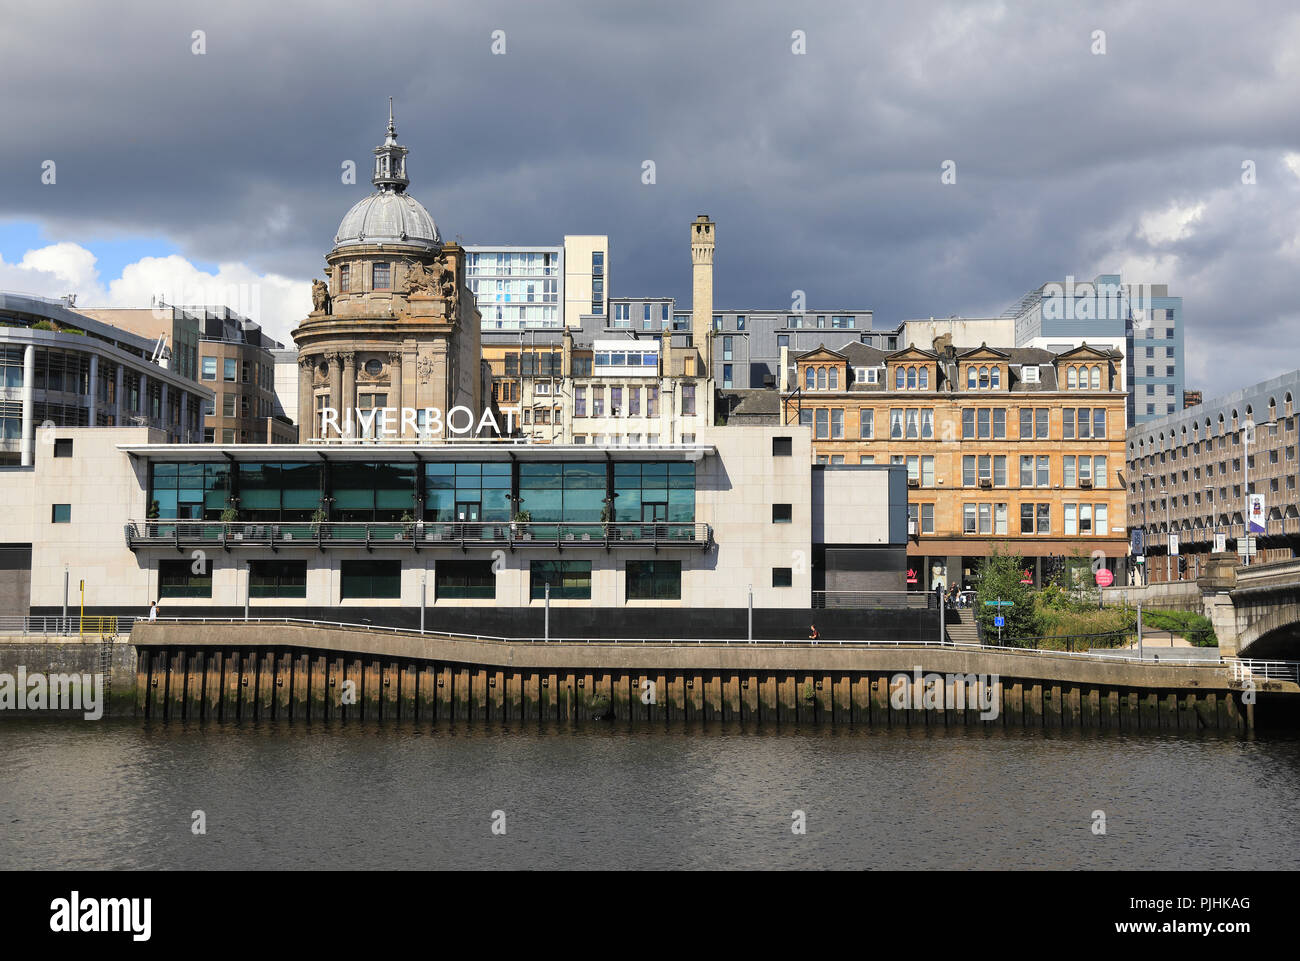 The Grosvenor Casino and Grill Riverboat, on Broomielaw by the River Clyde, in central Glasgow, UK - Stock Image